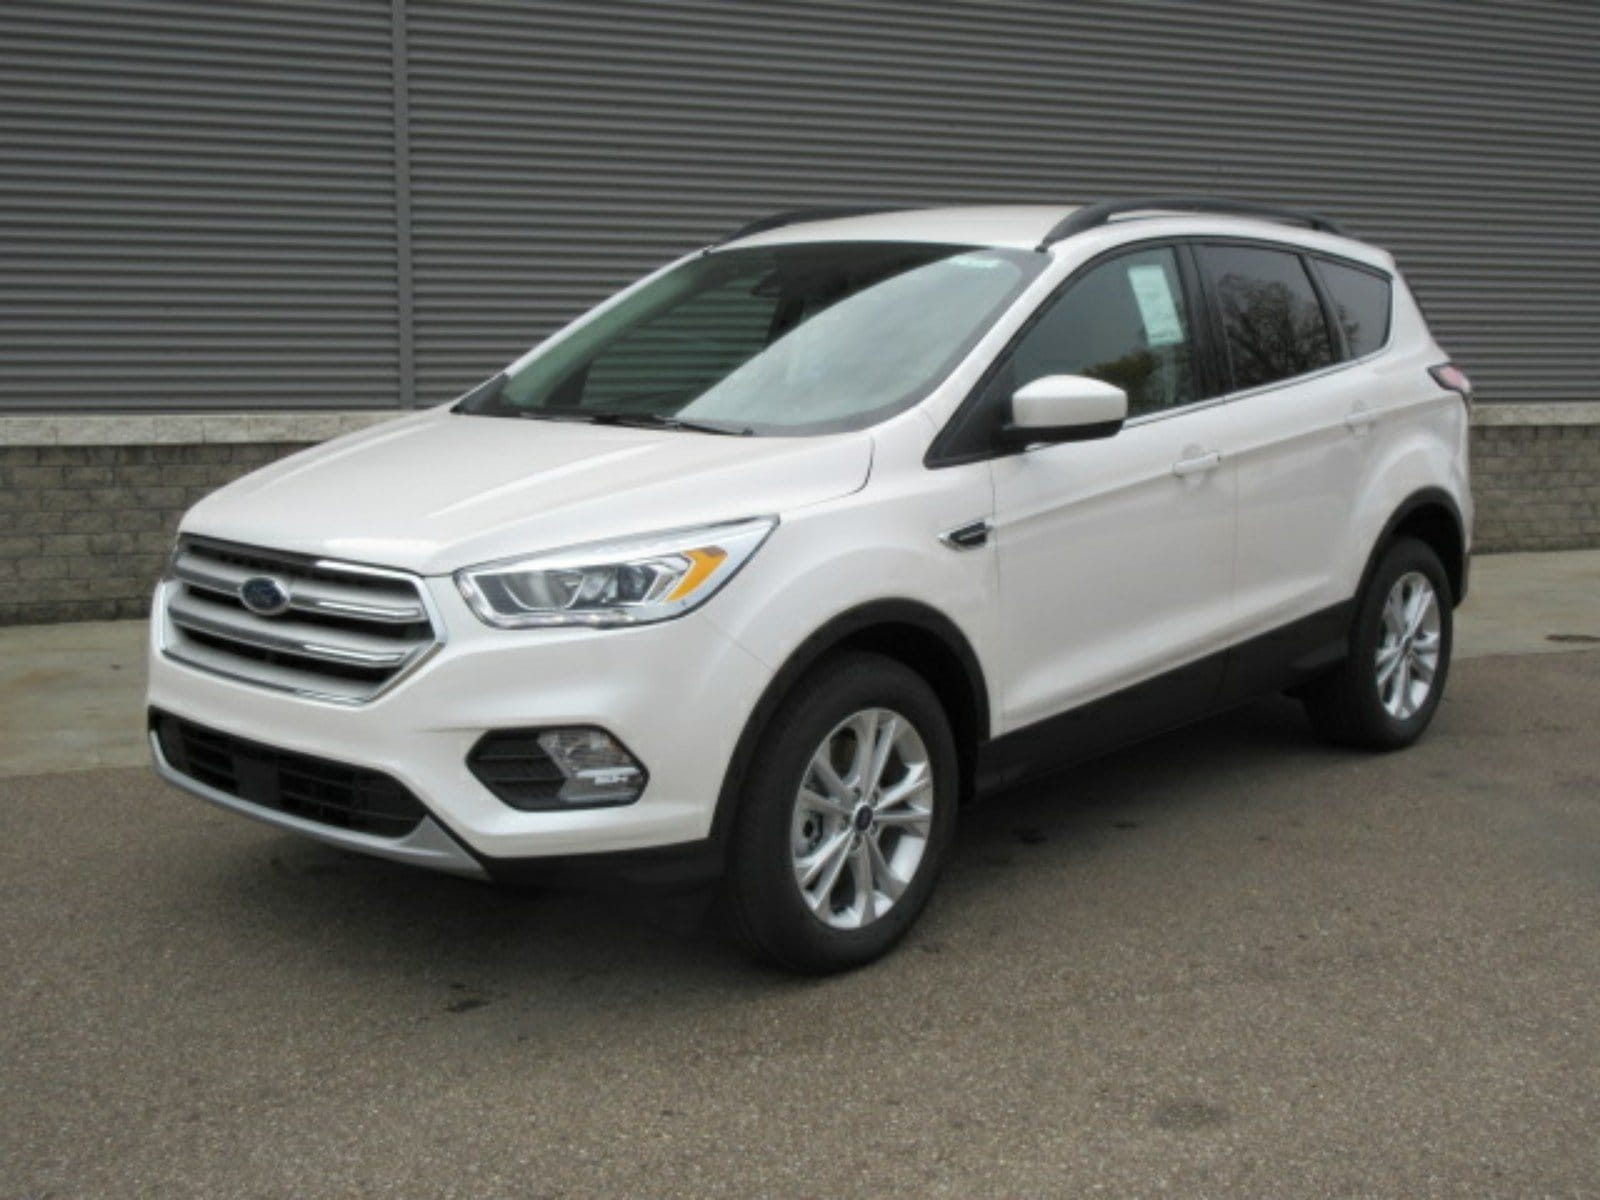 New 2018 Ford Escape SEL SEL 4WD for sale near Kalamazoo